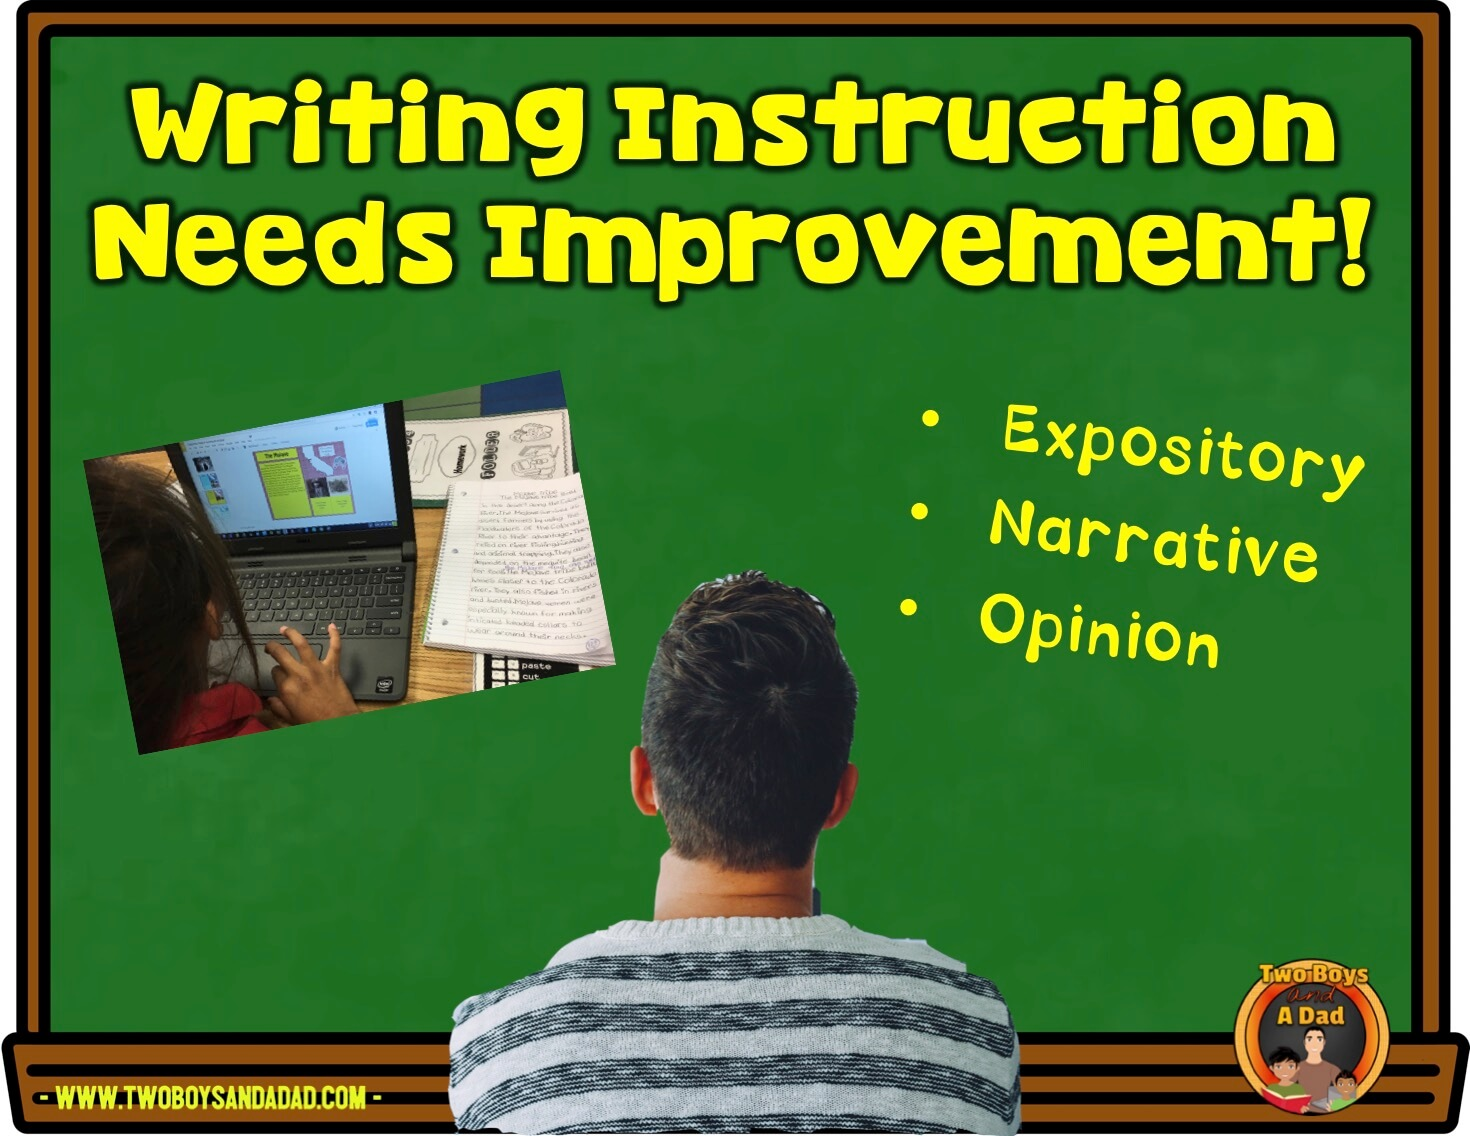 Improve writing instruction